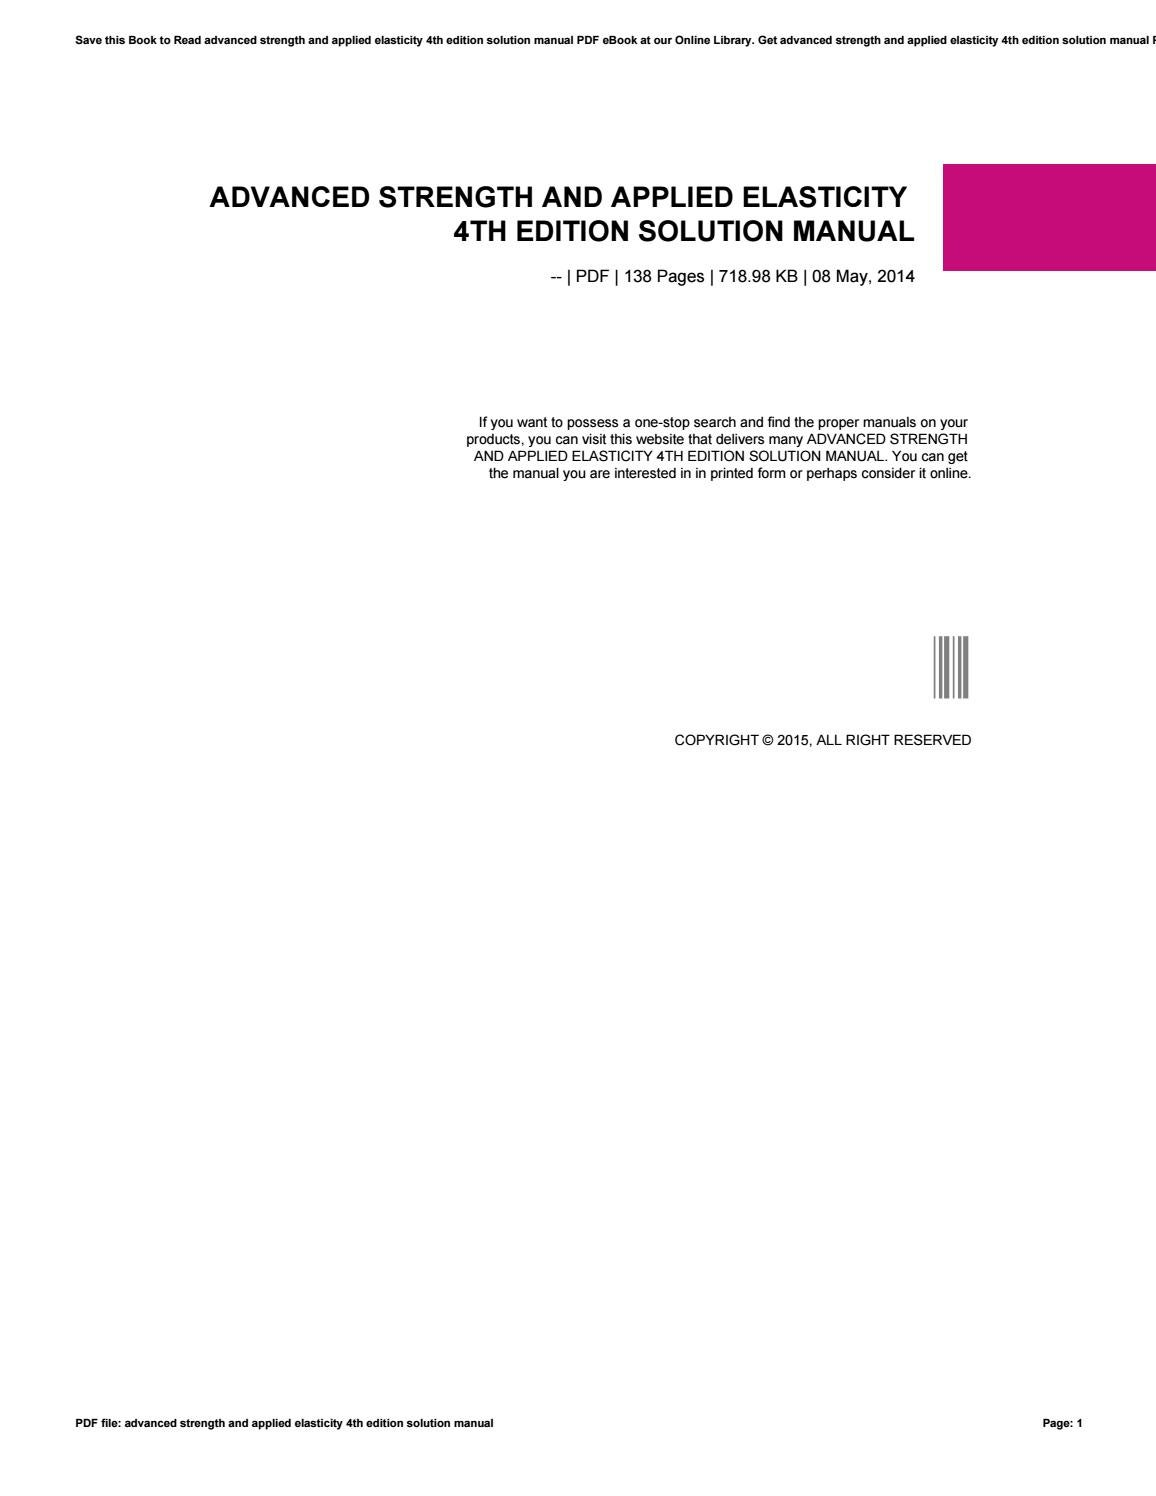 Advanced Strength And Applied Elasticity 4th Edition Solution Manual By Xww09 Issuu